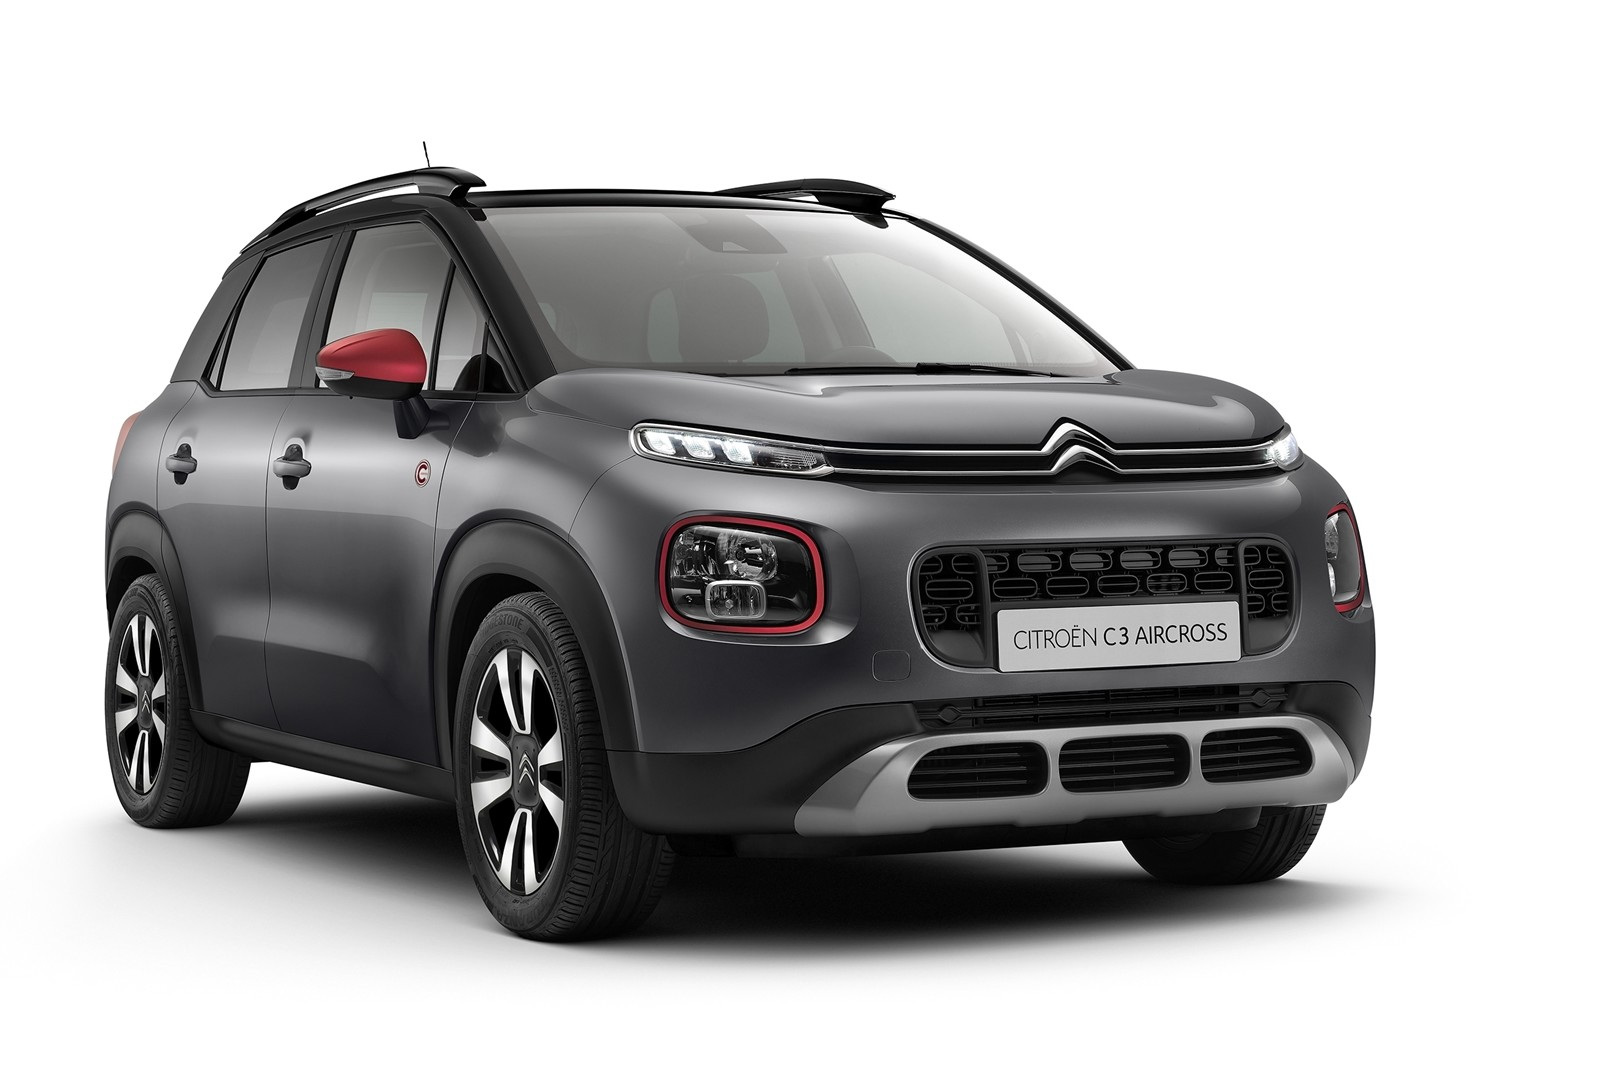 Citroën C3 Aircross C-Series 2020